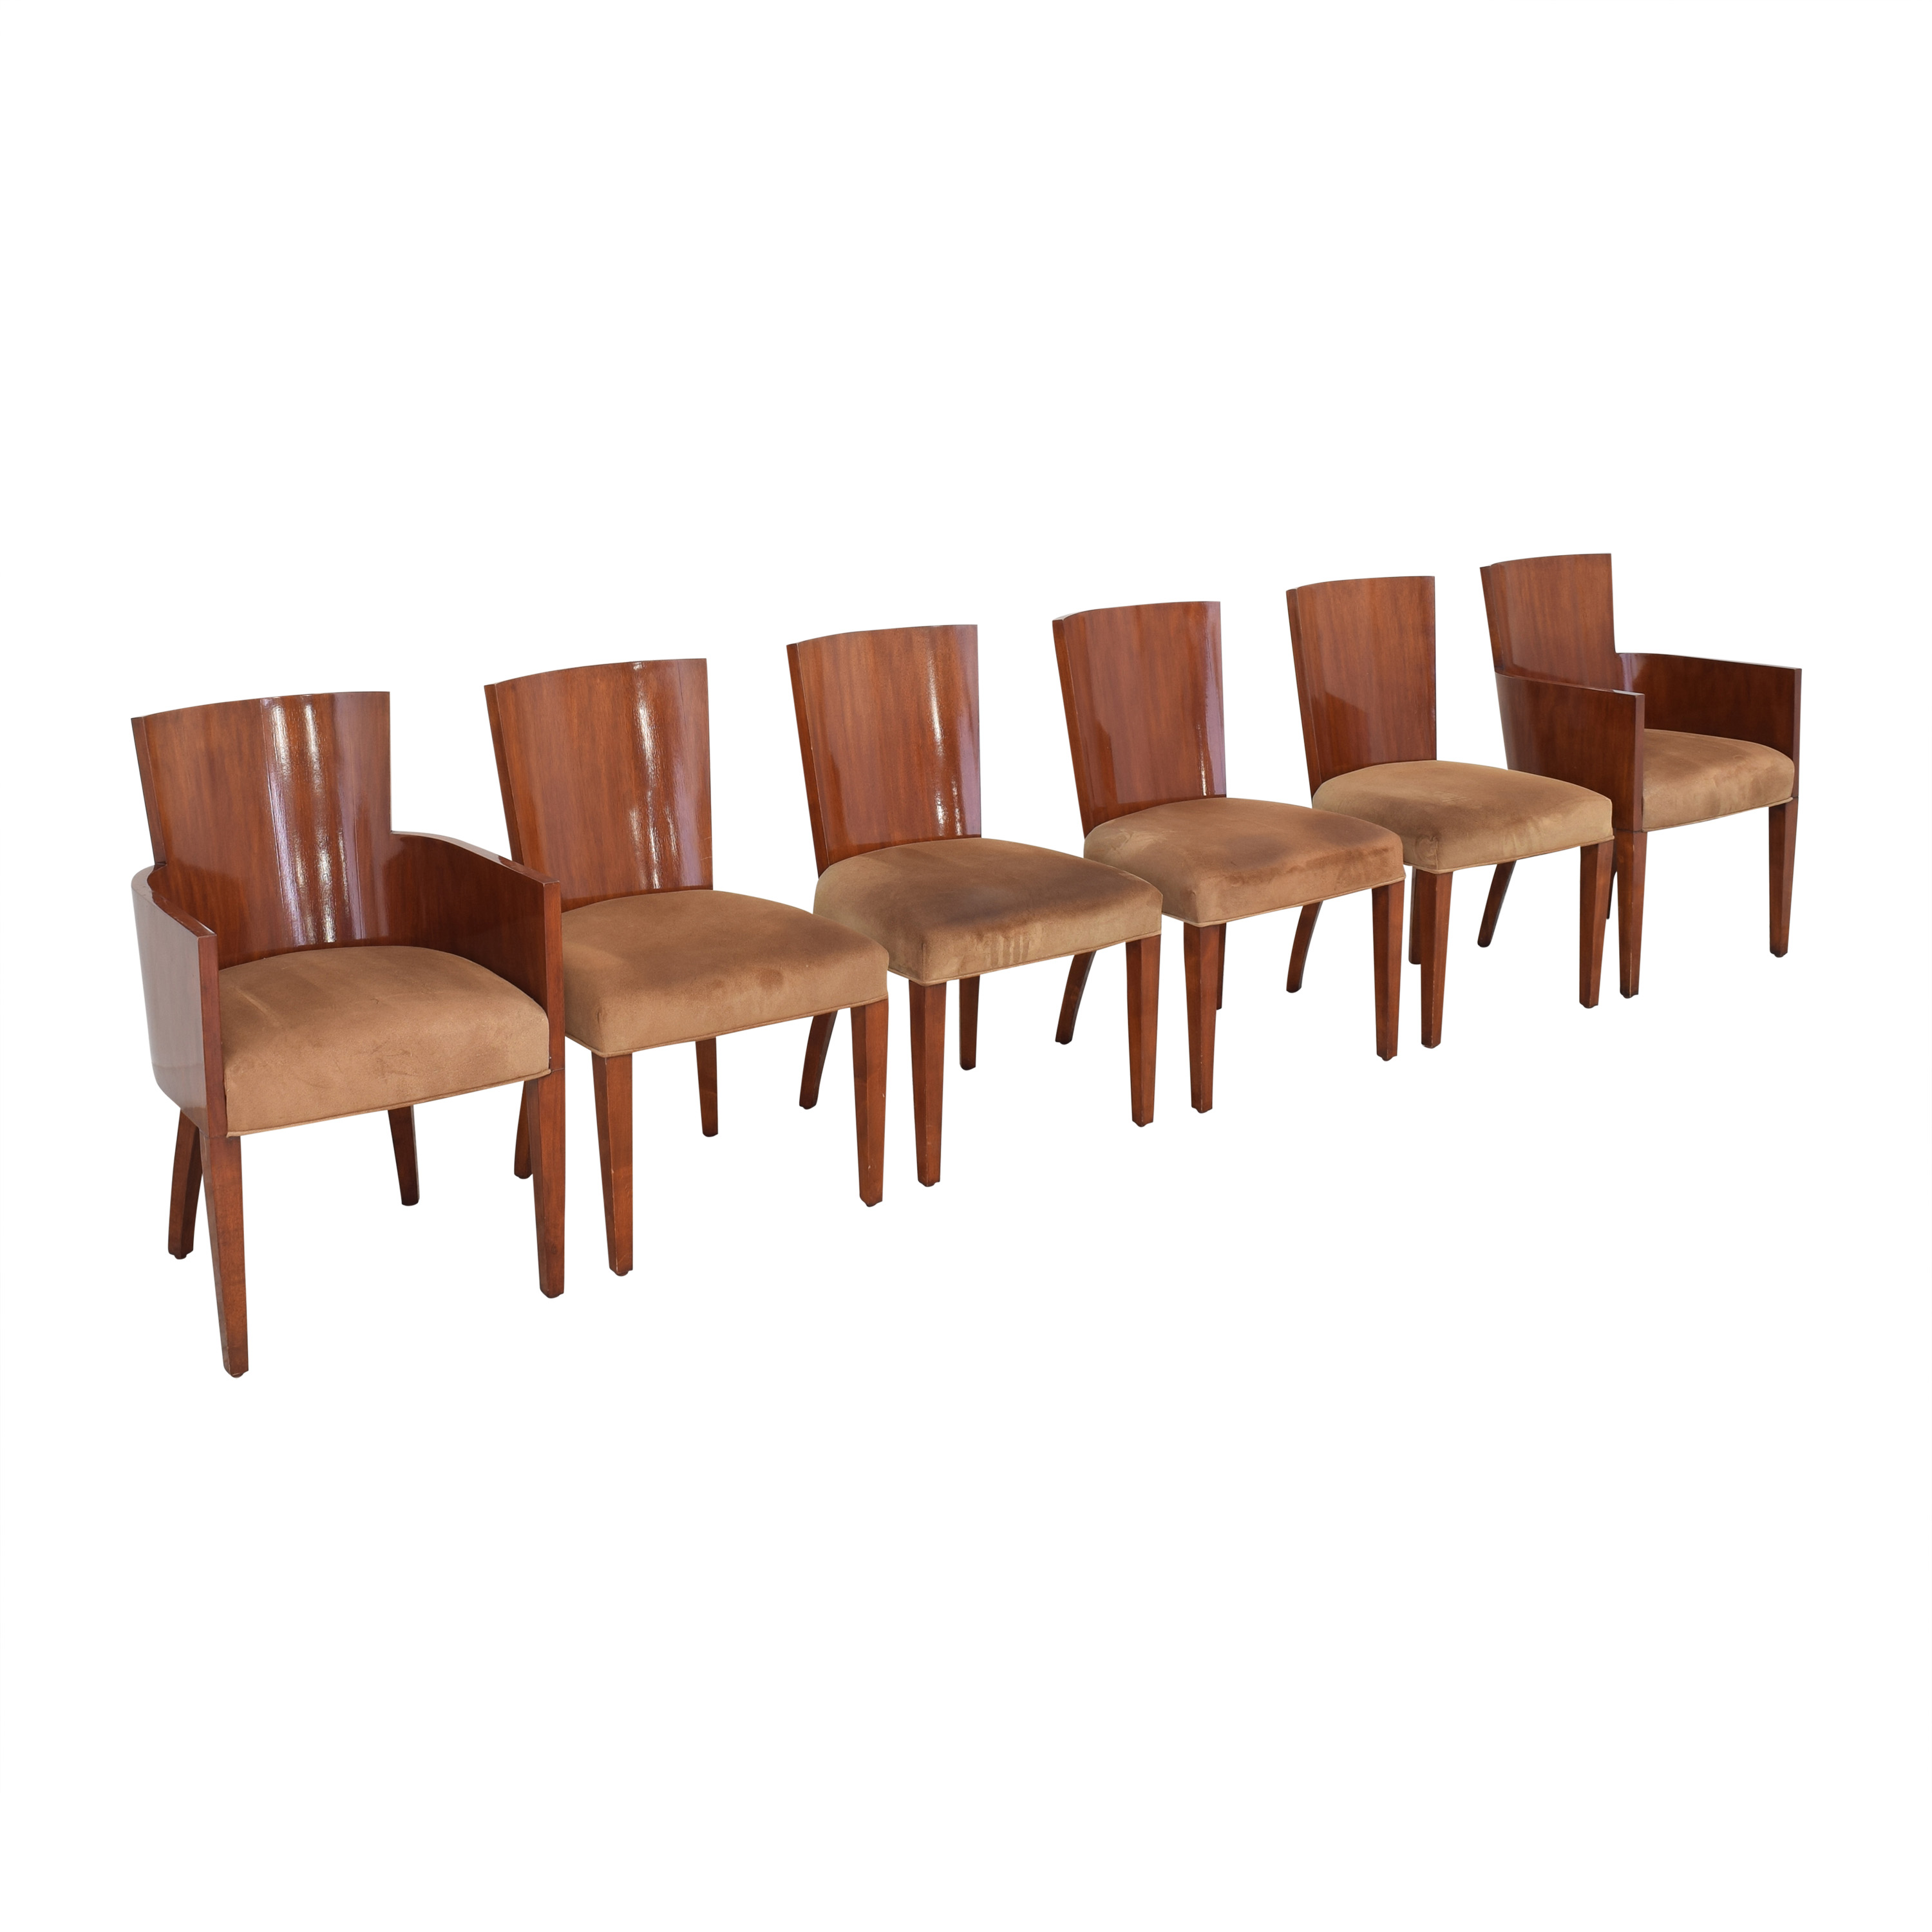 Ralph Lauren Home Ralph Lauren Home Upholstered Dining Chairs Dining Chairs